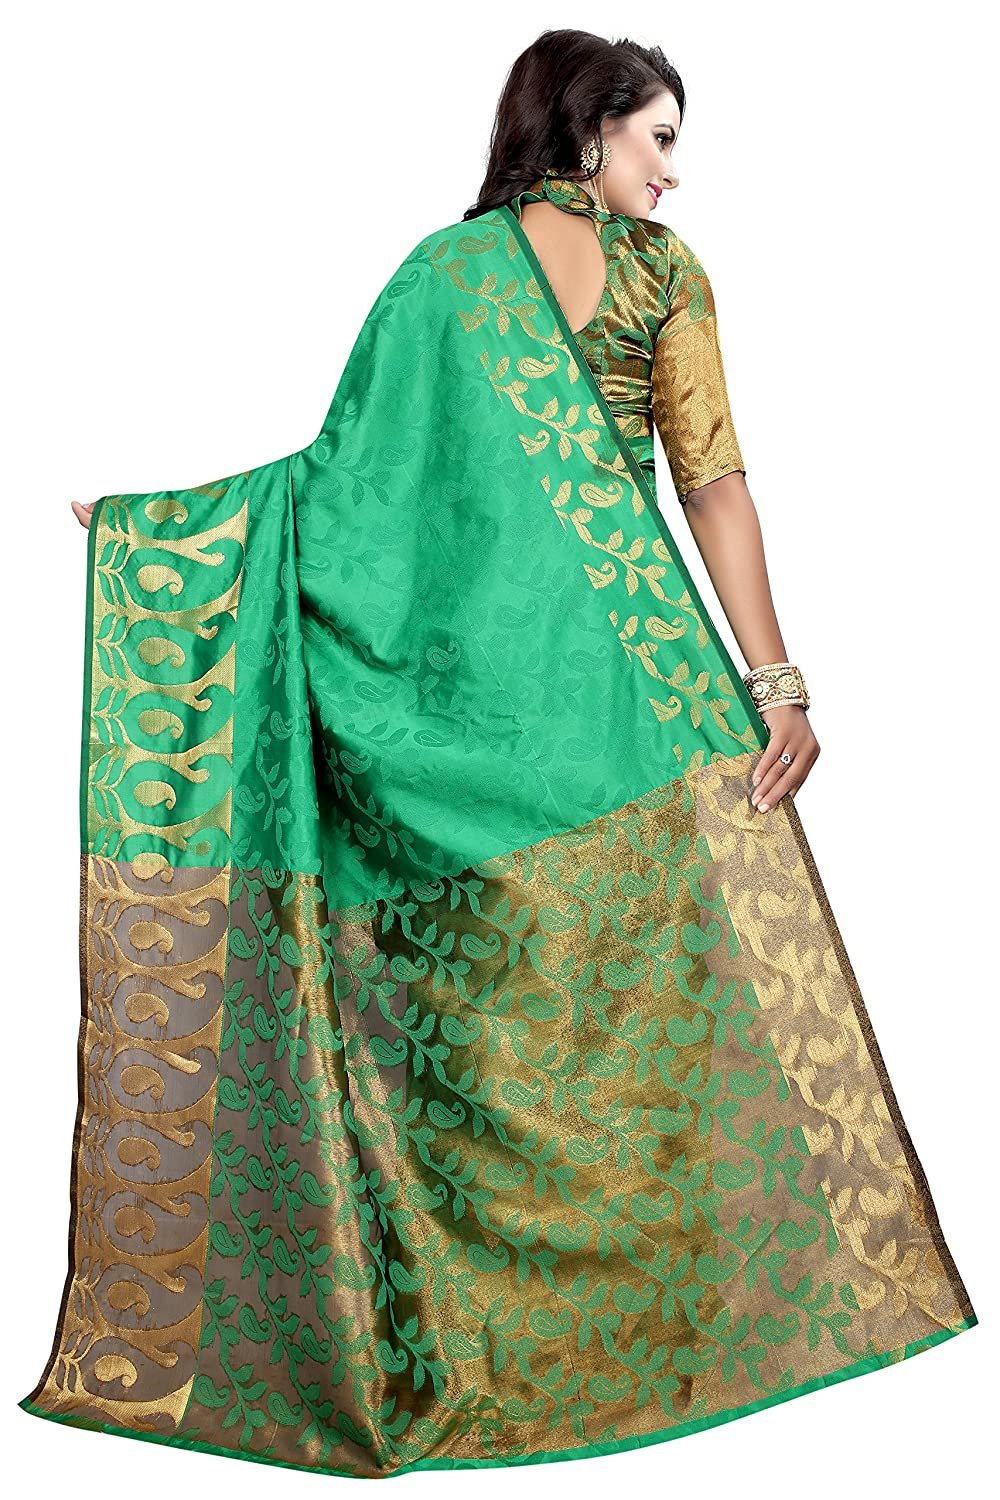 c72a2f10c7c74 Bindani Studio Women s Green Colour Silk Saree With Blouse Material   Amazon.in  Clothing   Accessories